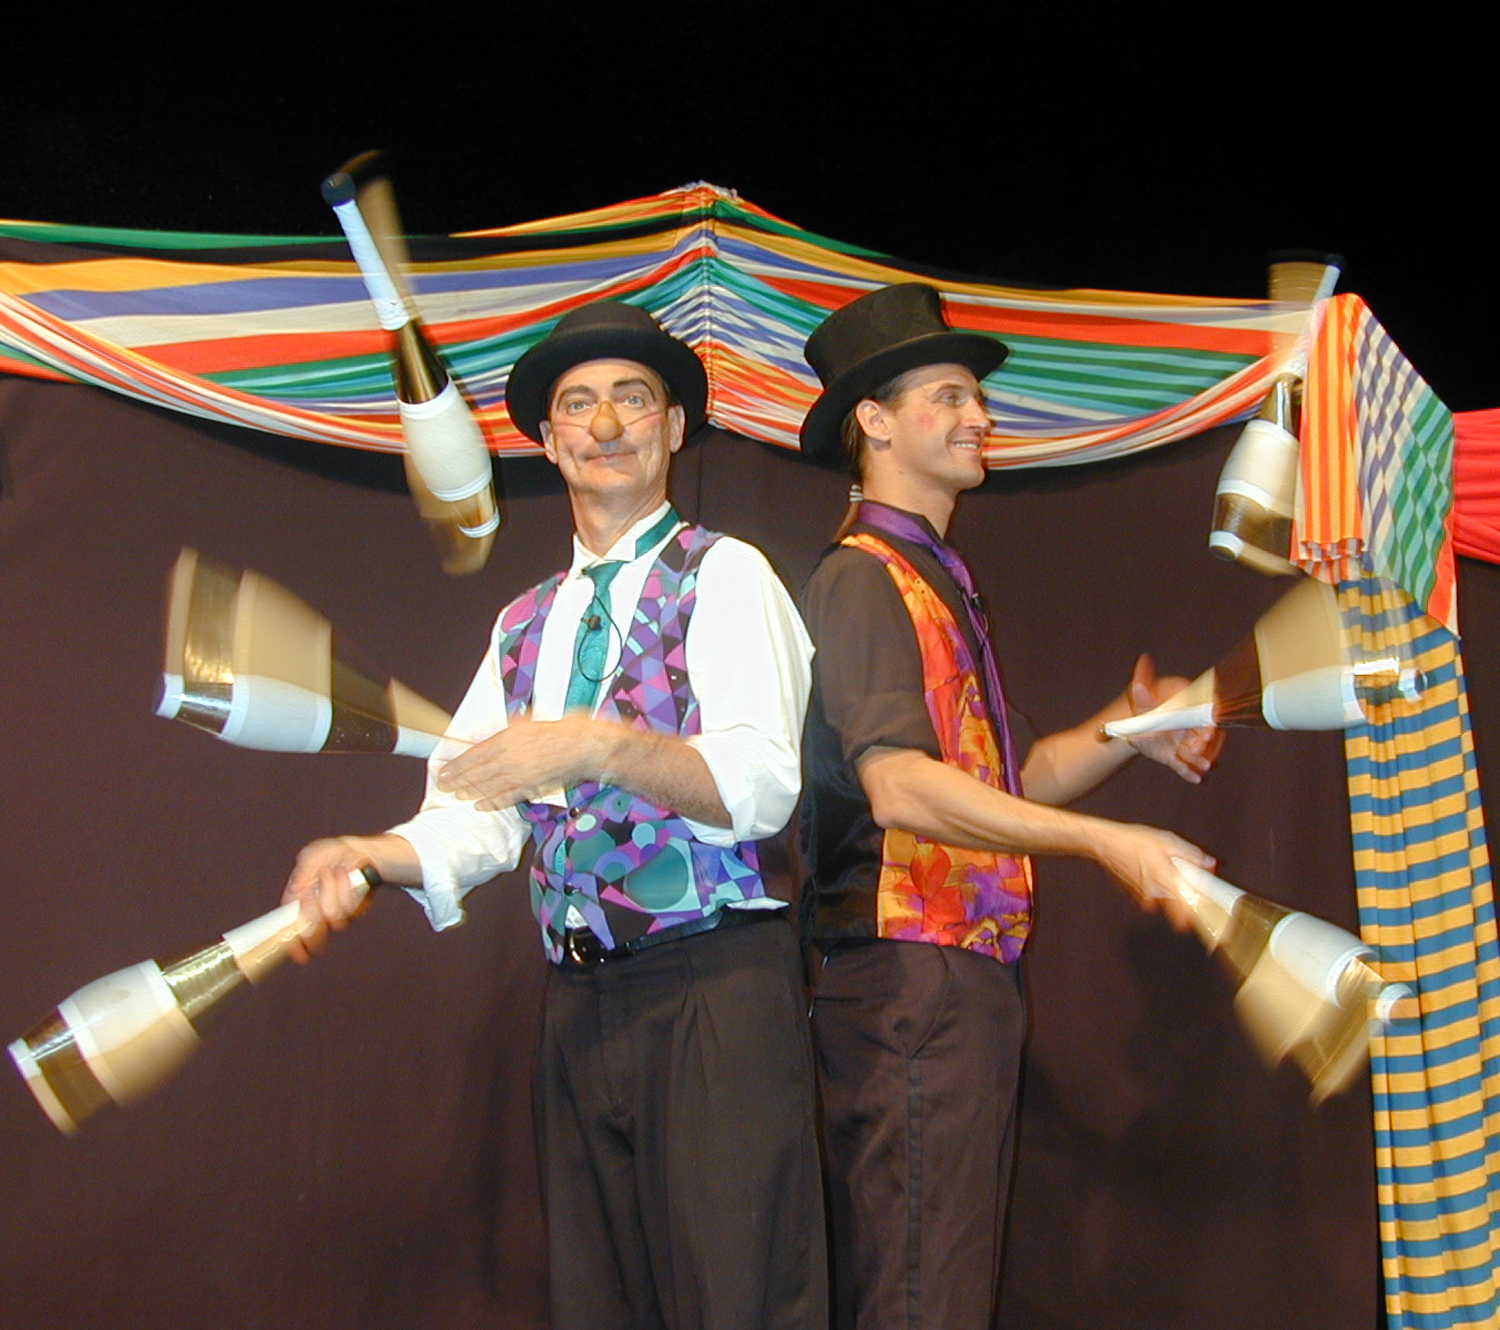 Group Jugglers